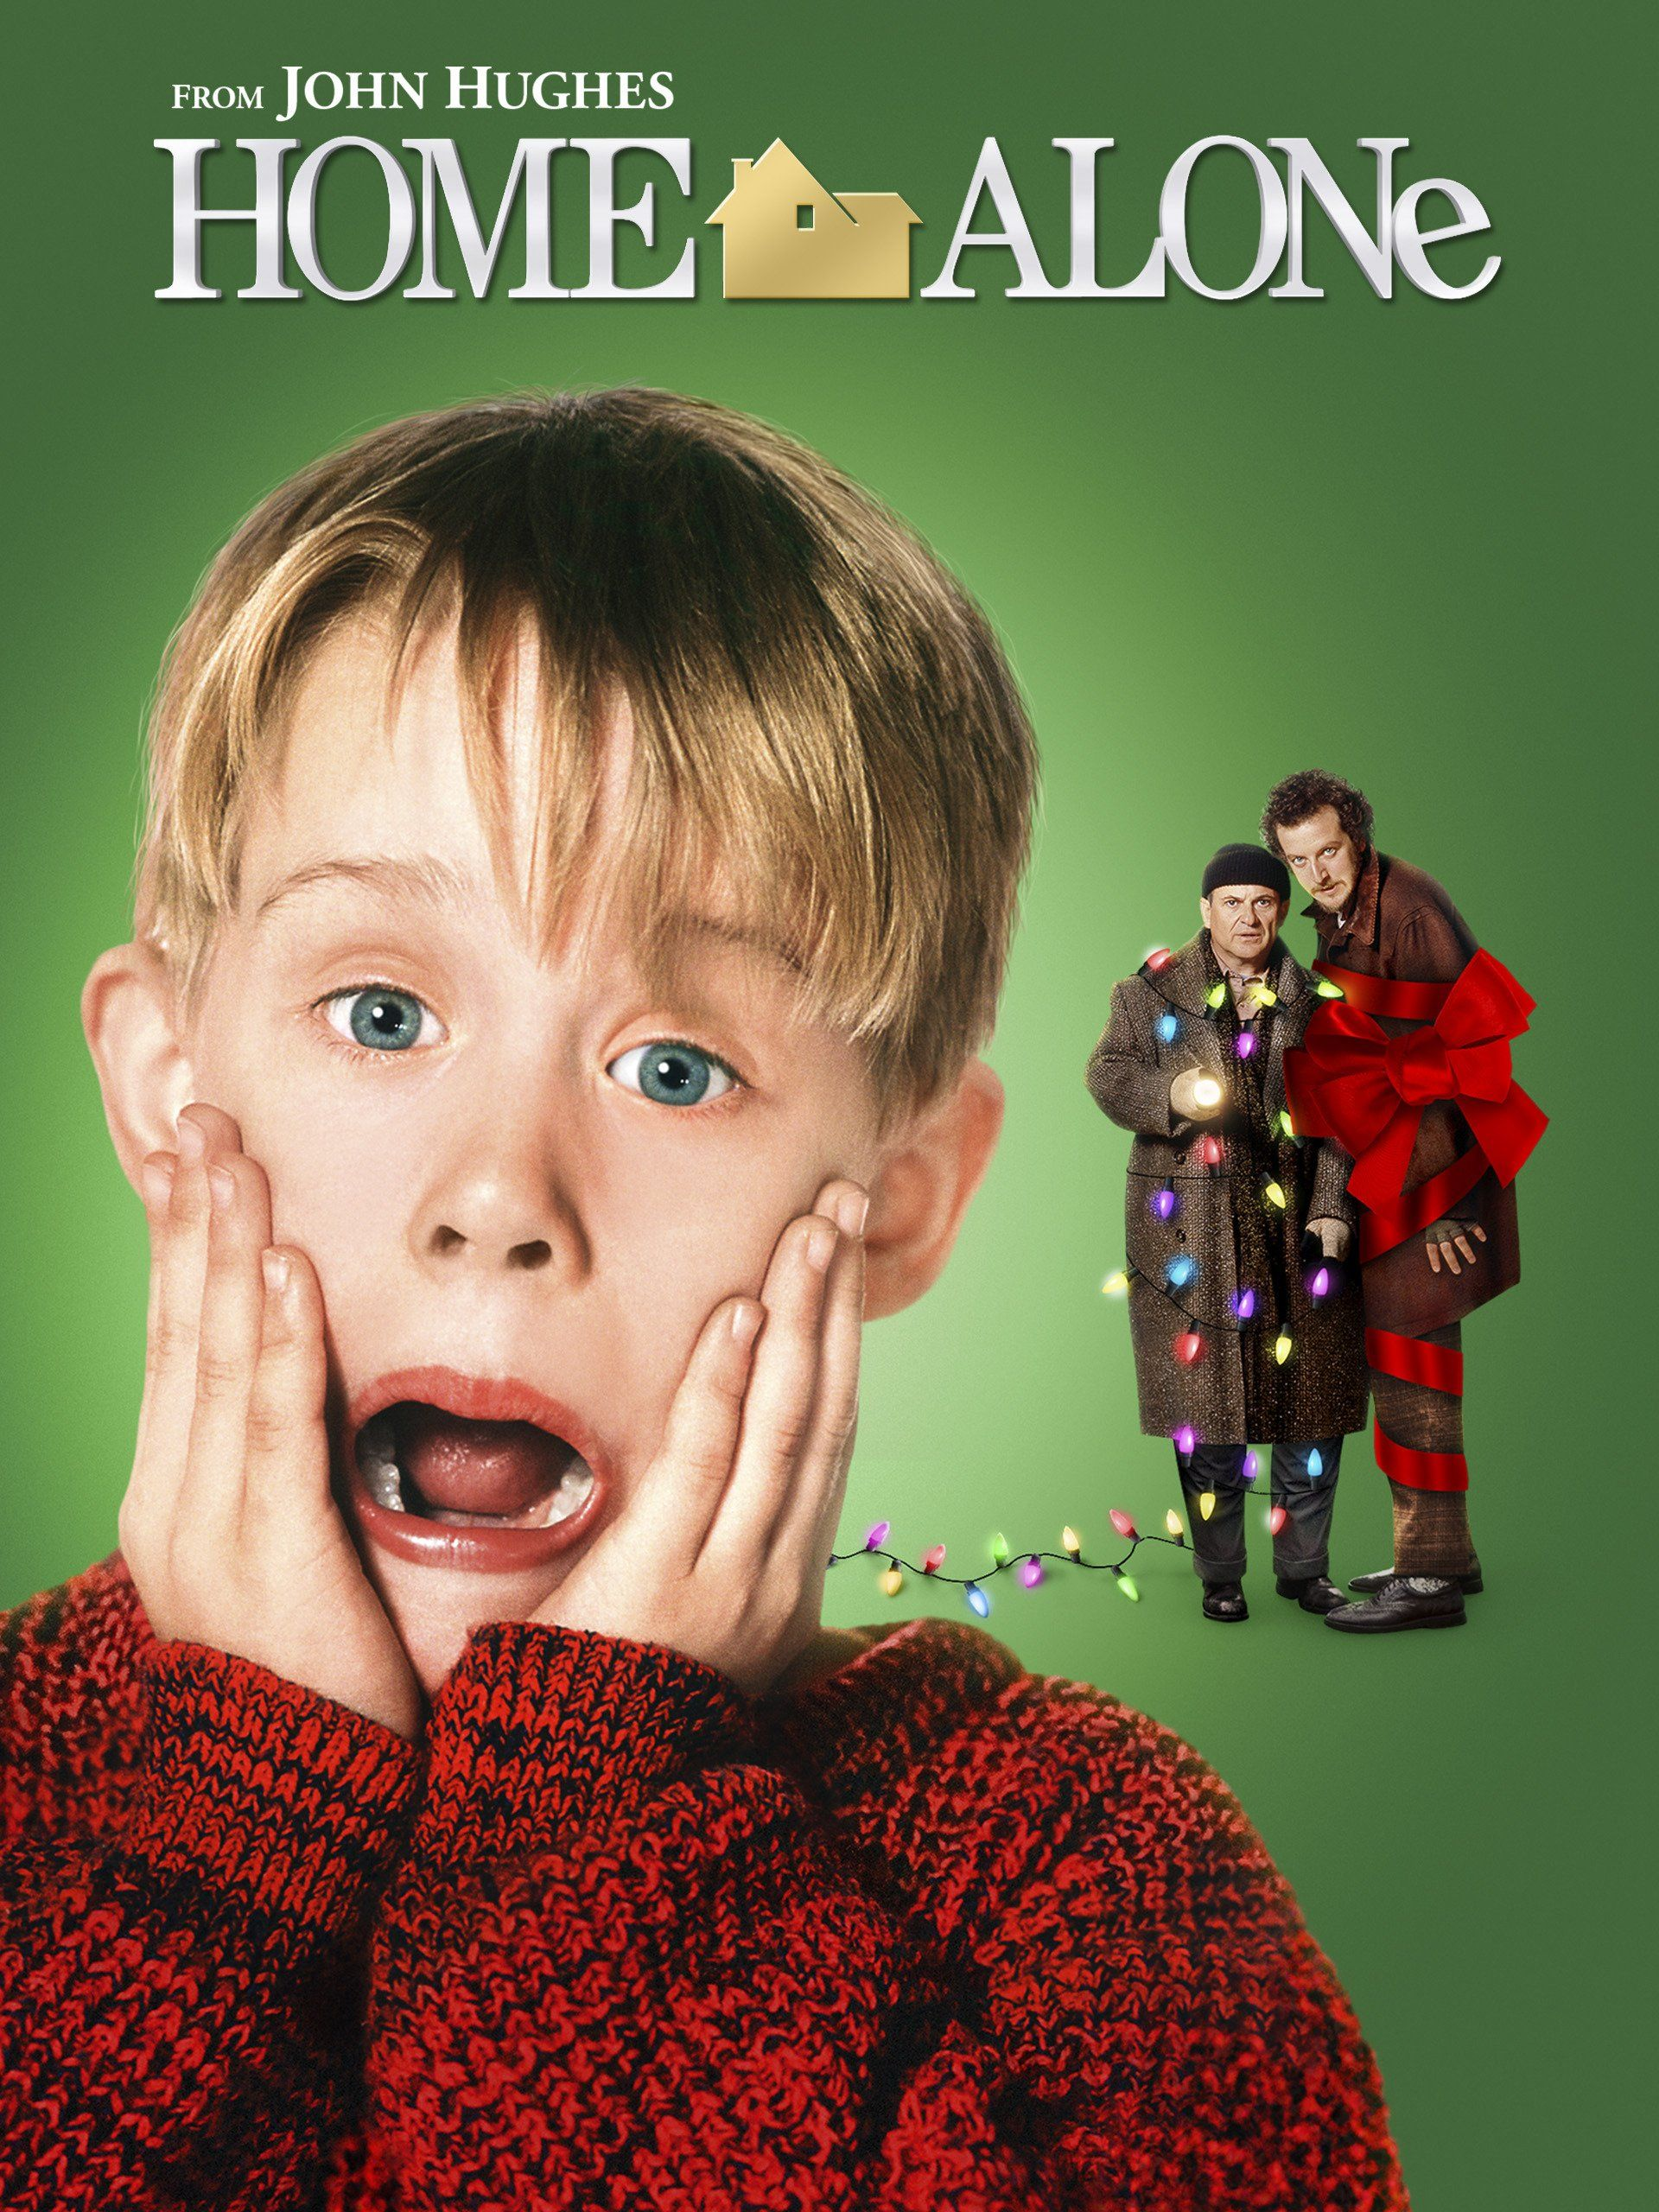 55 Best Christmas Movies of All Time - Classic Holiday Films